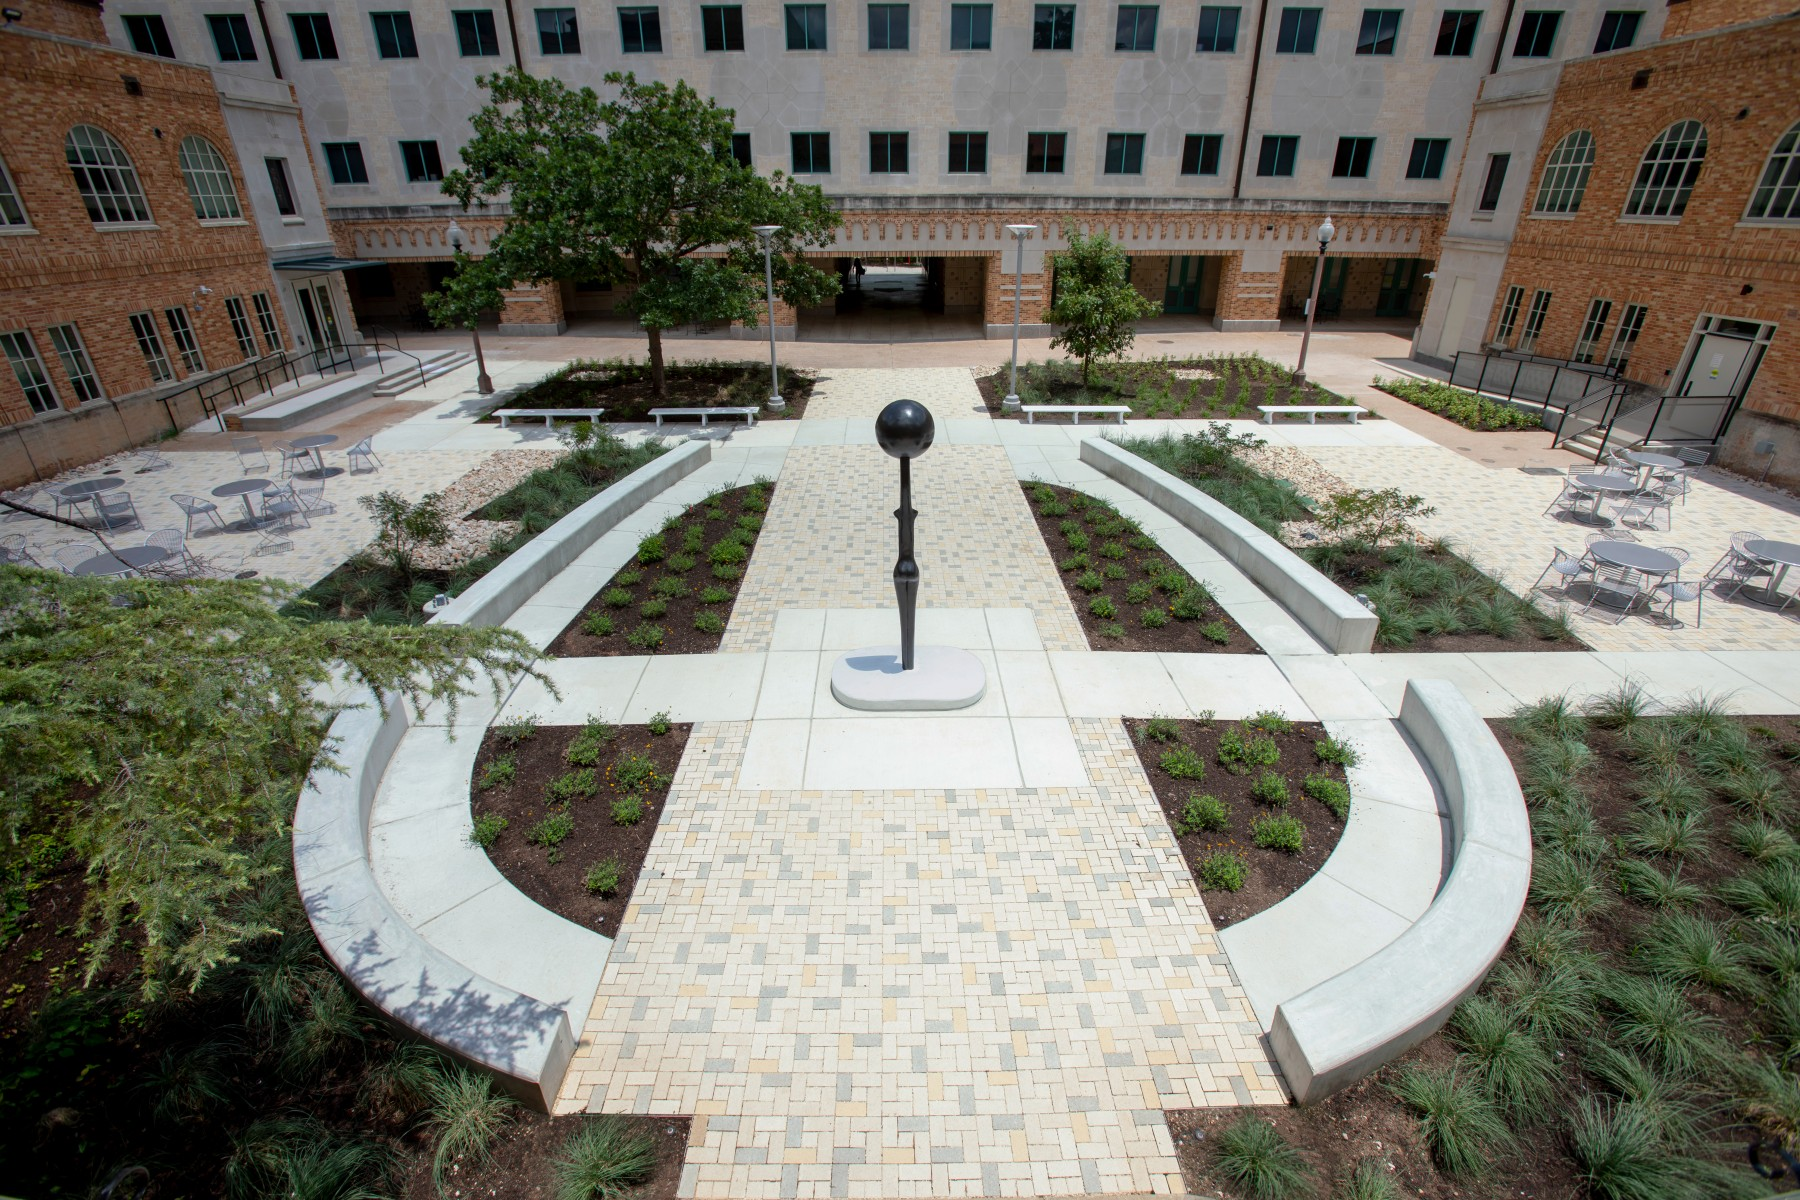 A wide angle image of Simone Leigh's Sentinel IV in the courtyard of Anna Hiss Gym. The building seems to surround the image and has a central staircase in the center of the image. The sculpture, a slender bronze figure with a bowllike head is placed in the center.